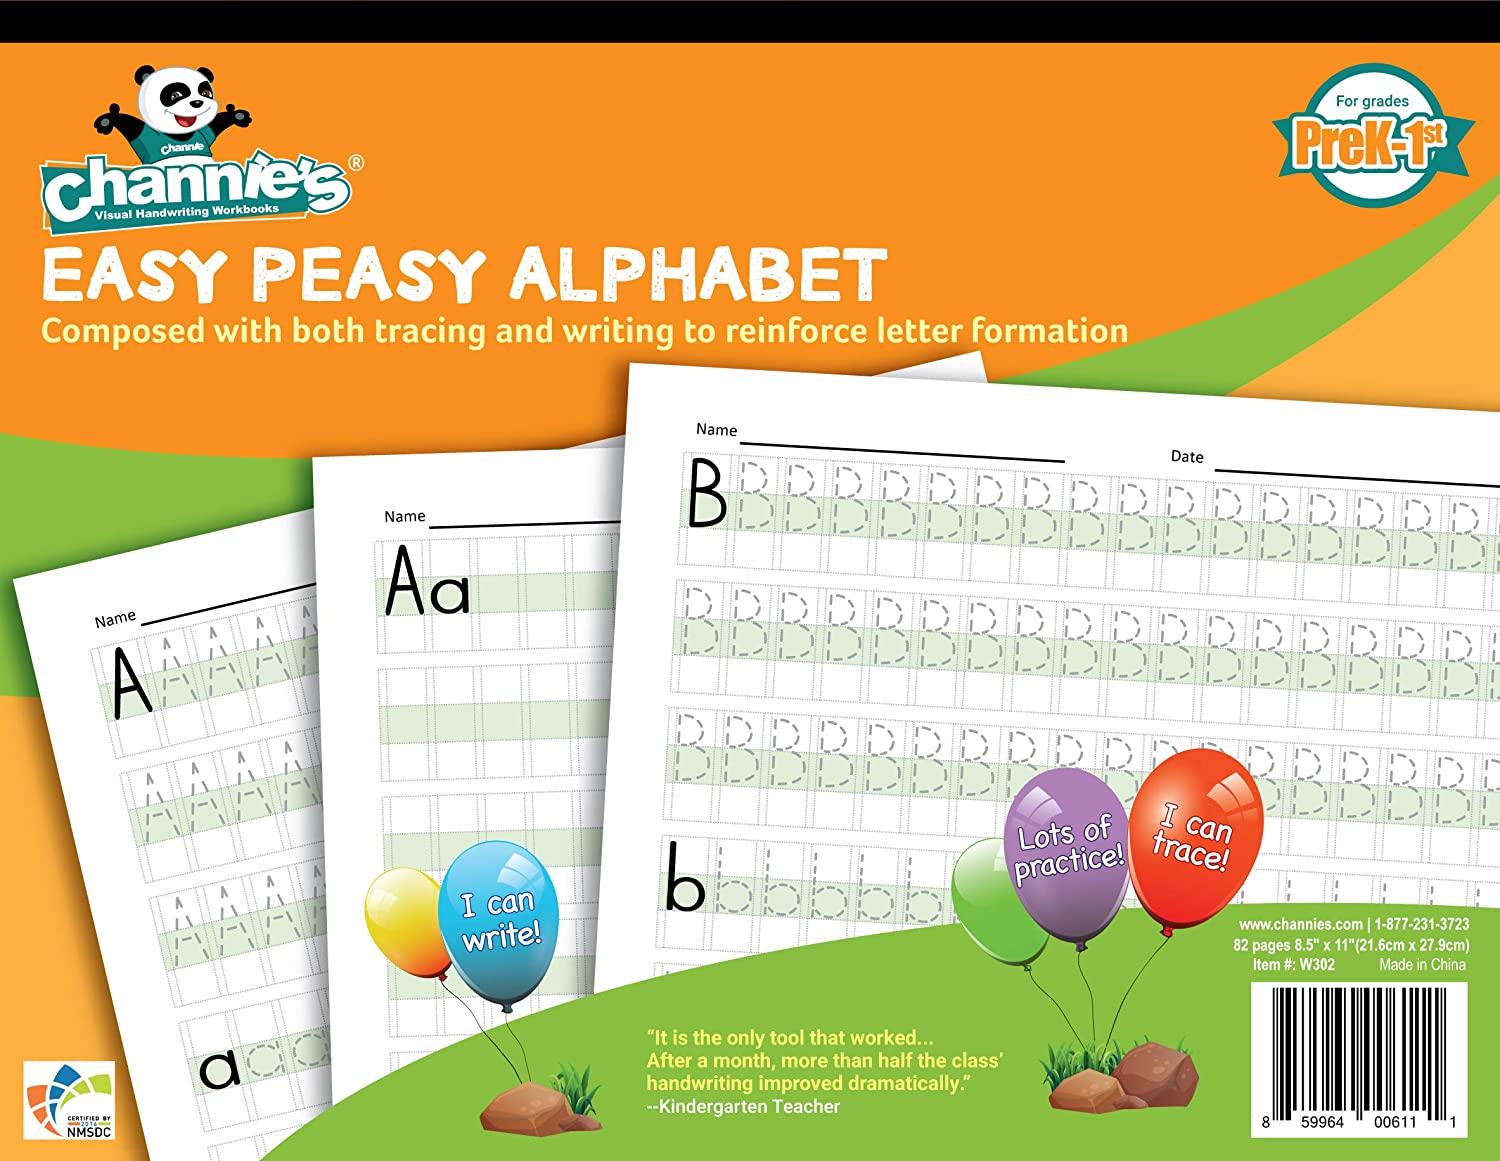 Channie's W302 EASY PEASY ALPHABET HANDWRITING WORKBOOK COMBINE BOTH TRACING & WRITING. LOTS PRACTICES! MOST VISUAL & SIMPLE WORKBOOK ON THE MARKET : Office Products